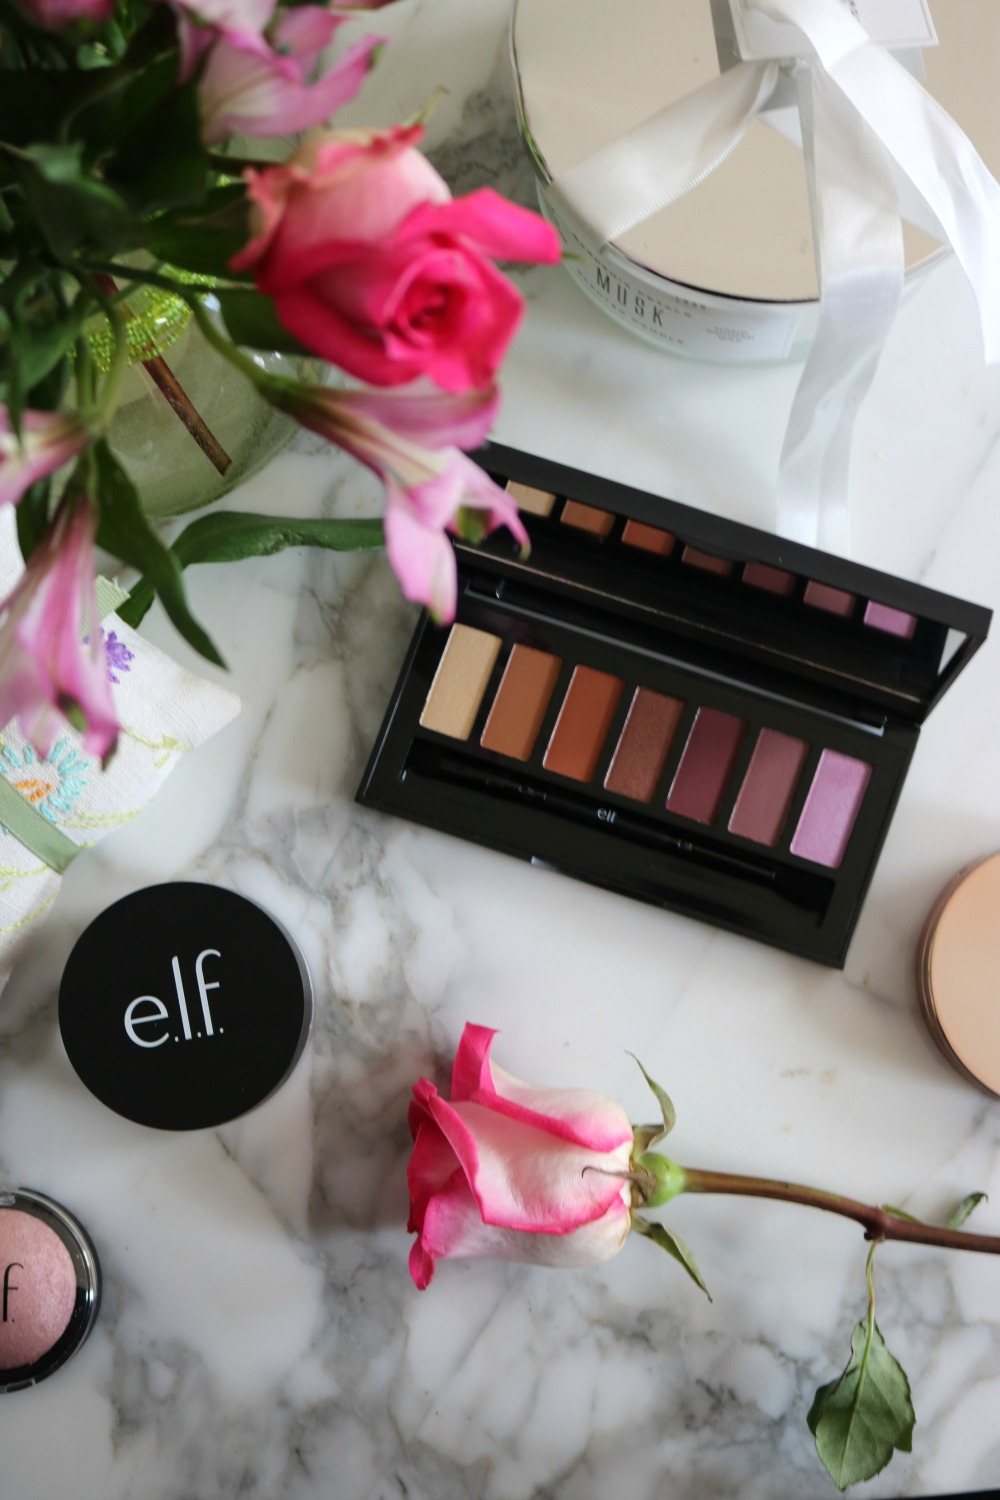 Most Popular Blog Posts of 2018 I Elf Chormatic Eyeshadow Palette #CrueltyFreeBeauty #SpringMakeup